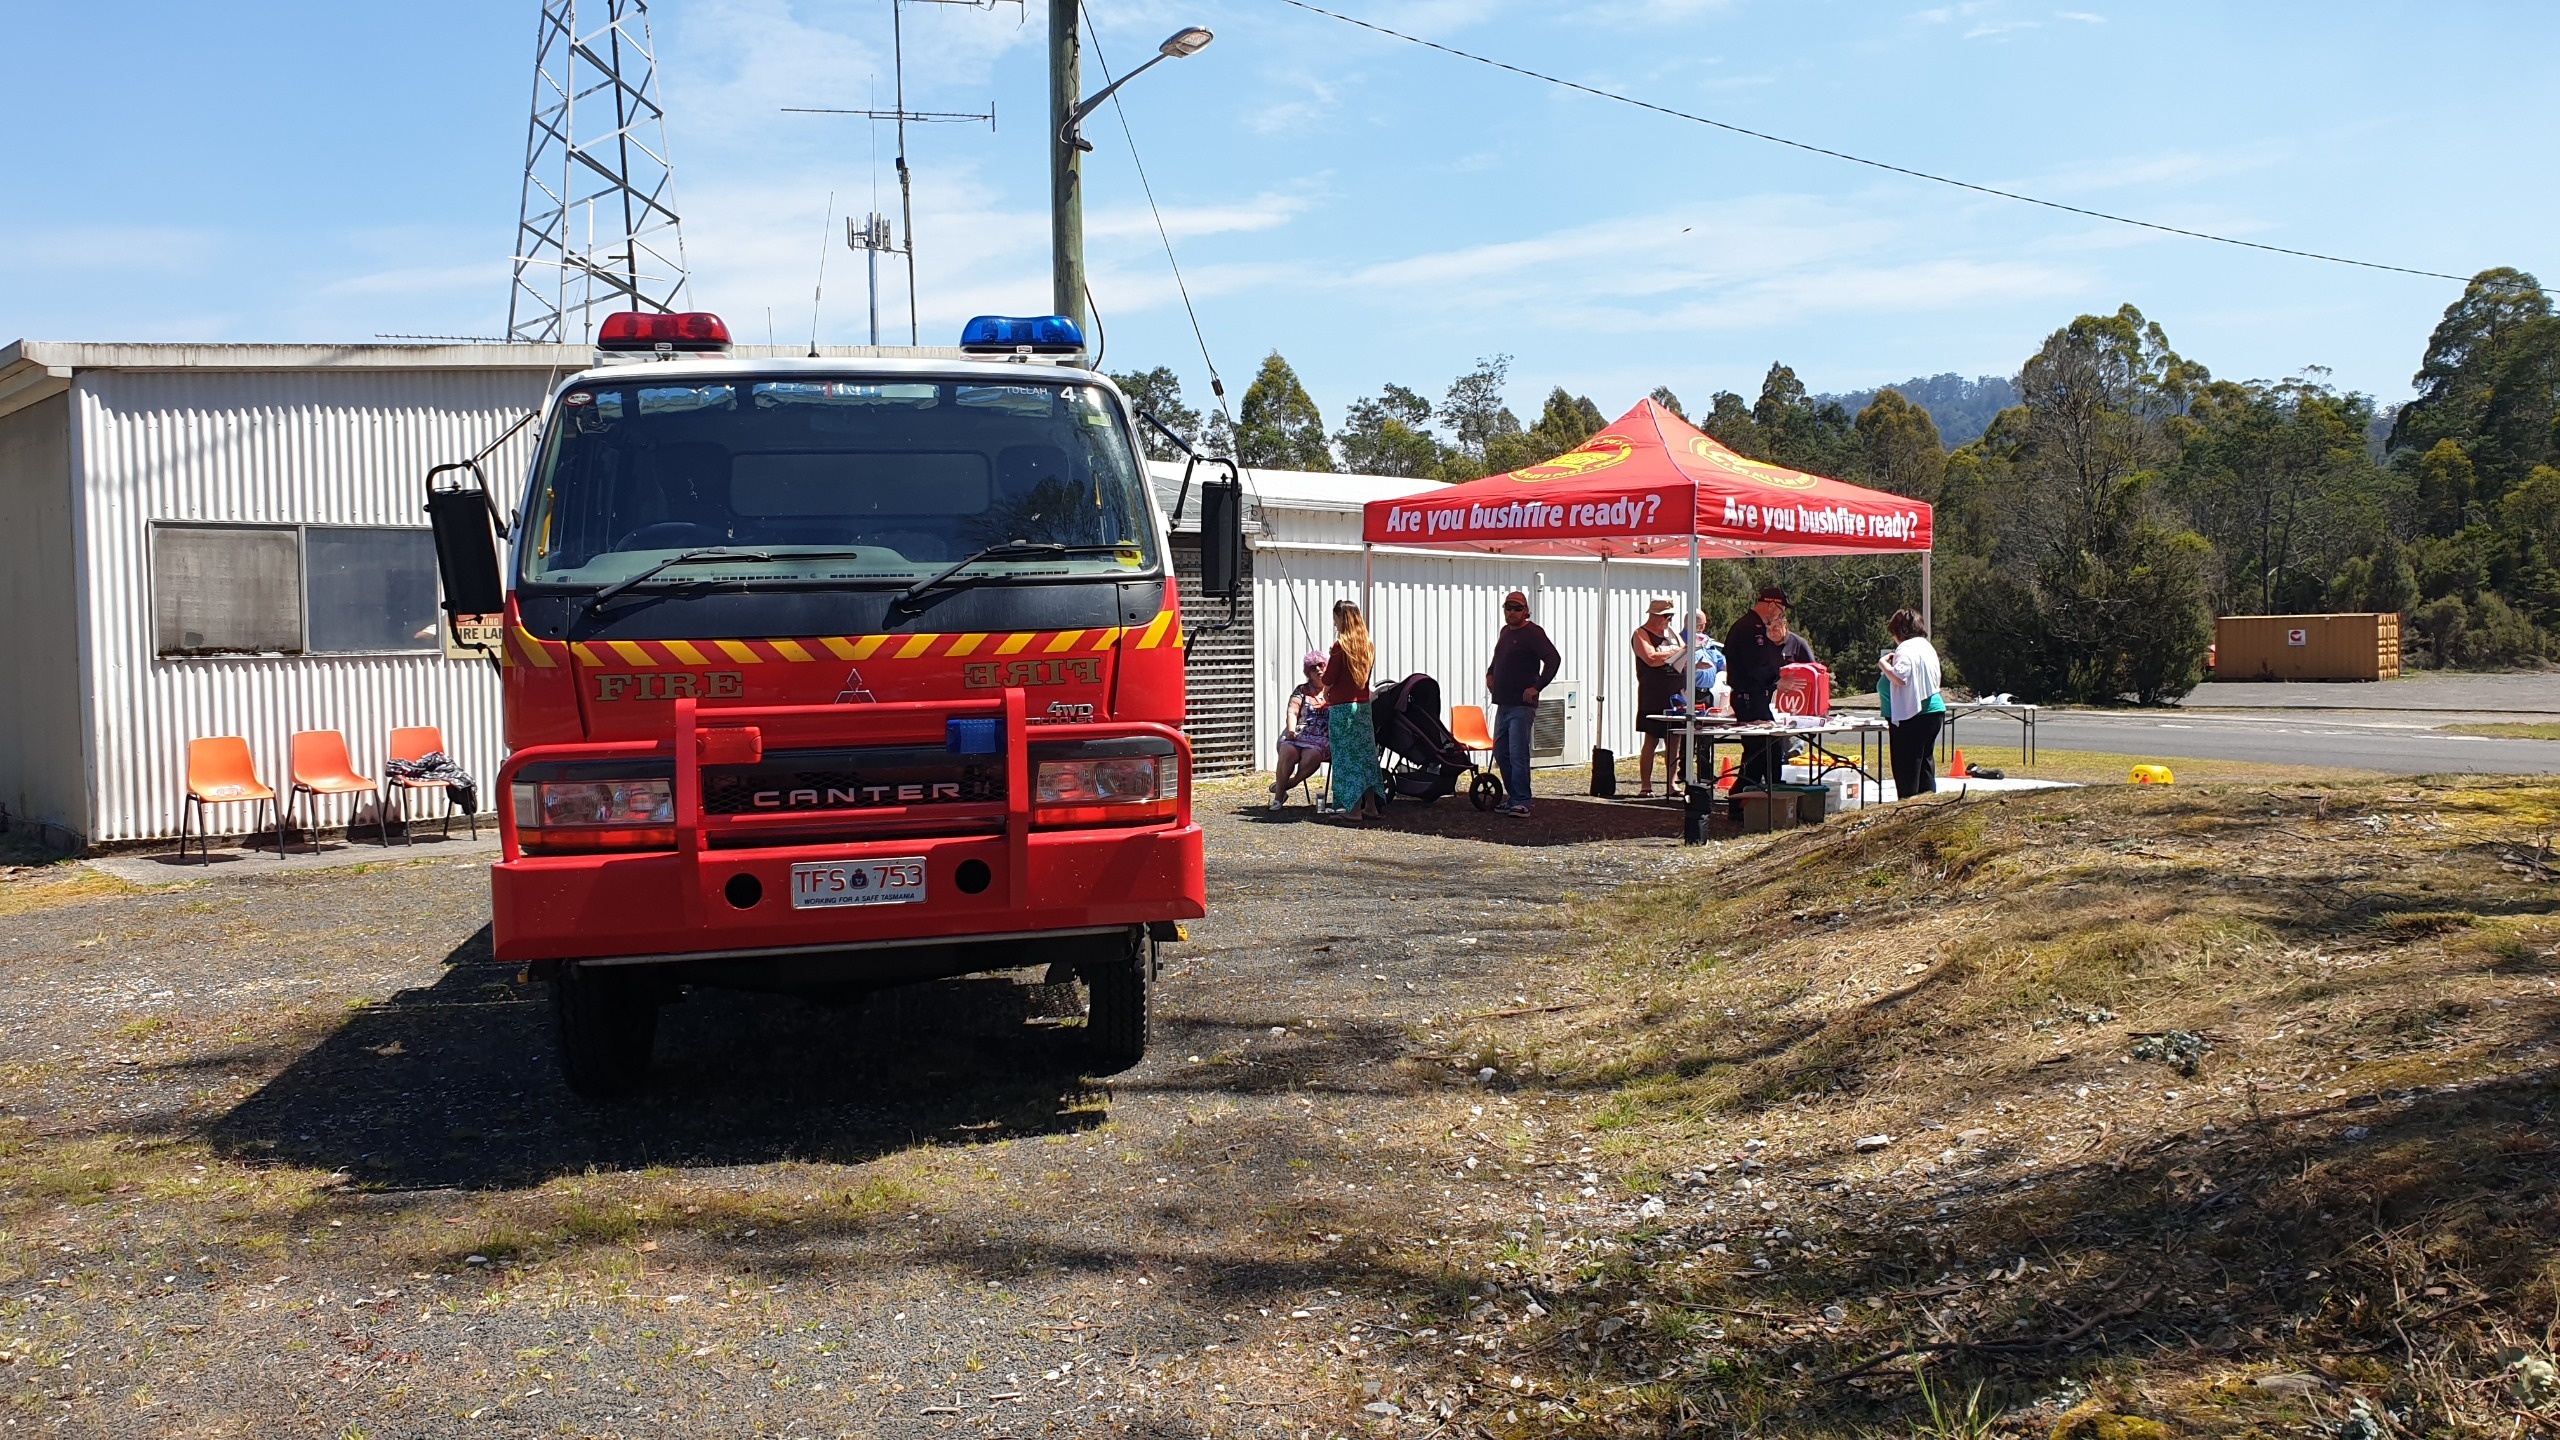 gazebo and fire truck at Tullah Fire Station